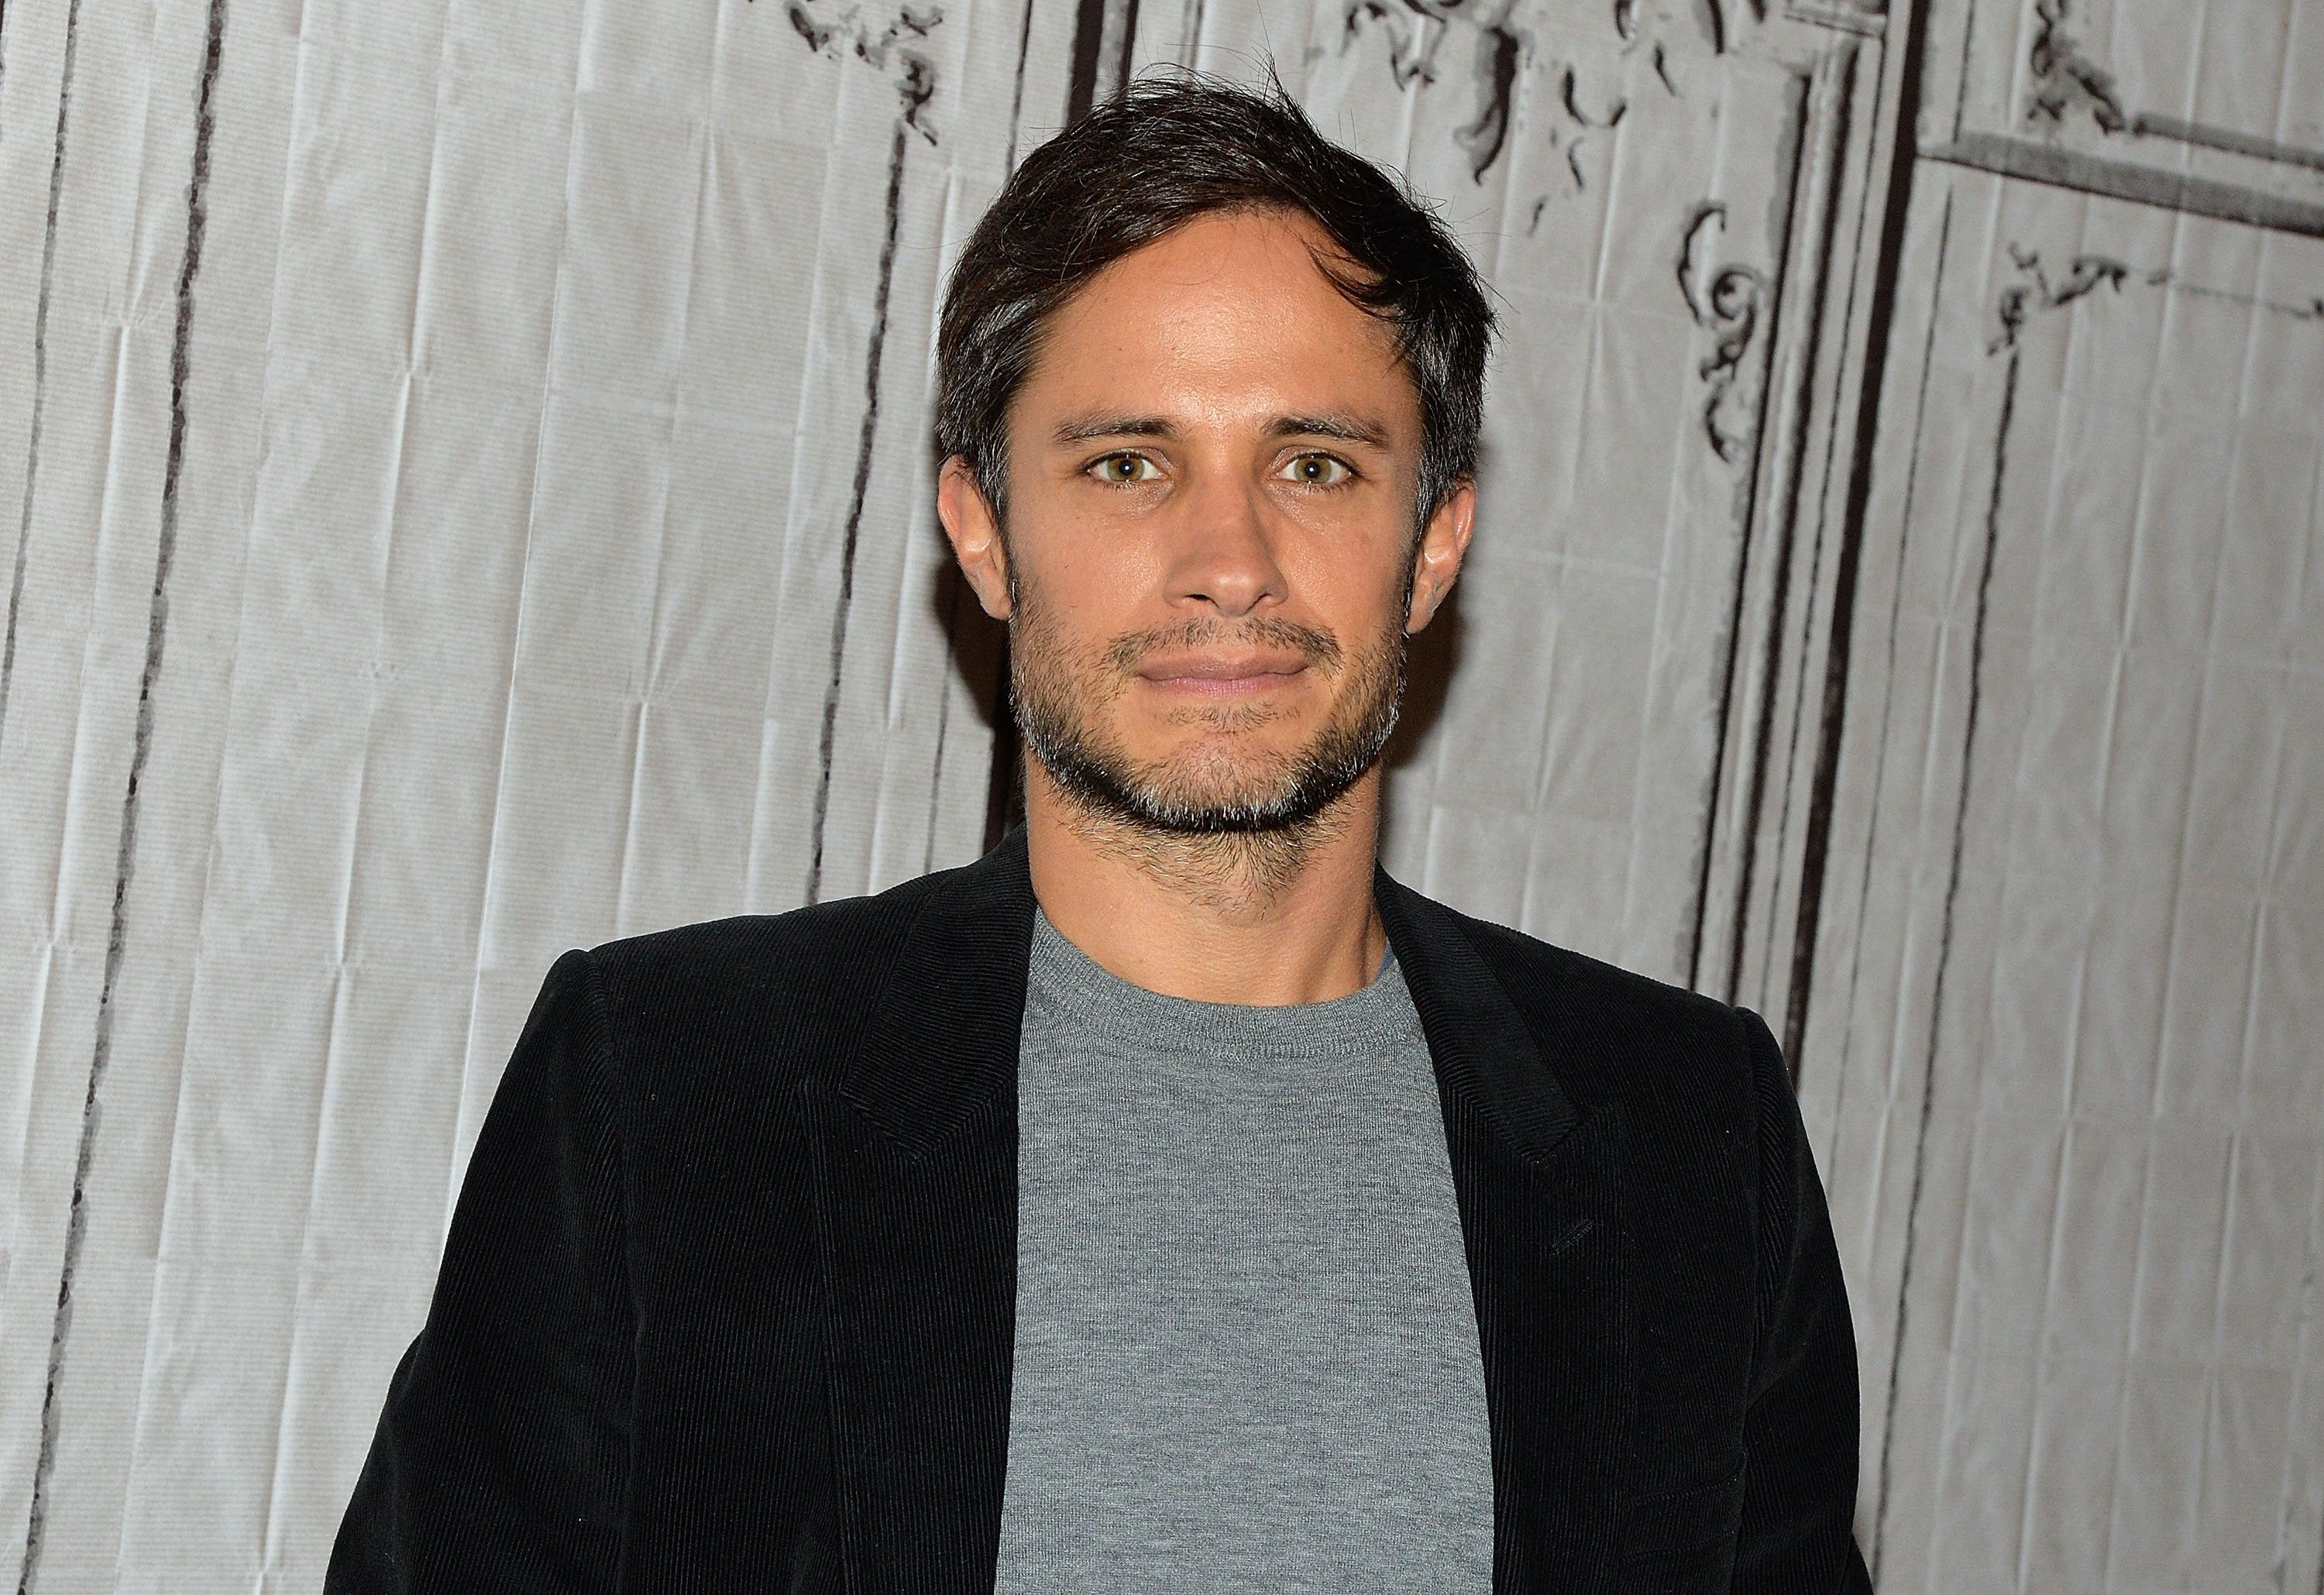 NEW YORK, NY - JANUARY 20:  Golden Globe-winner Gael Garcia Bernal (Best Actor in a TV Series, Comedy) visits AOL Build Speaker Series to discuss his award-winning show Amazon's Original Series 'Mozart in the Jungle at AOL Studios In New York on January 20, 2016 in New York City.  (Photo by Slaven Vlasic/Getty Images)